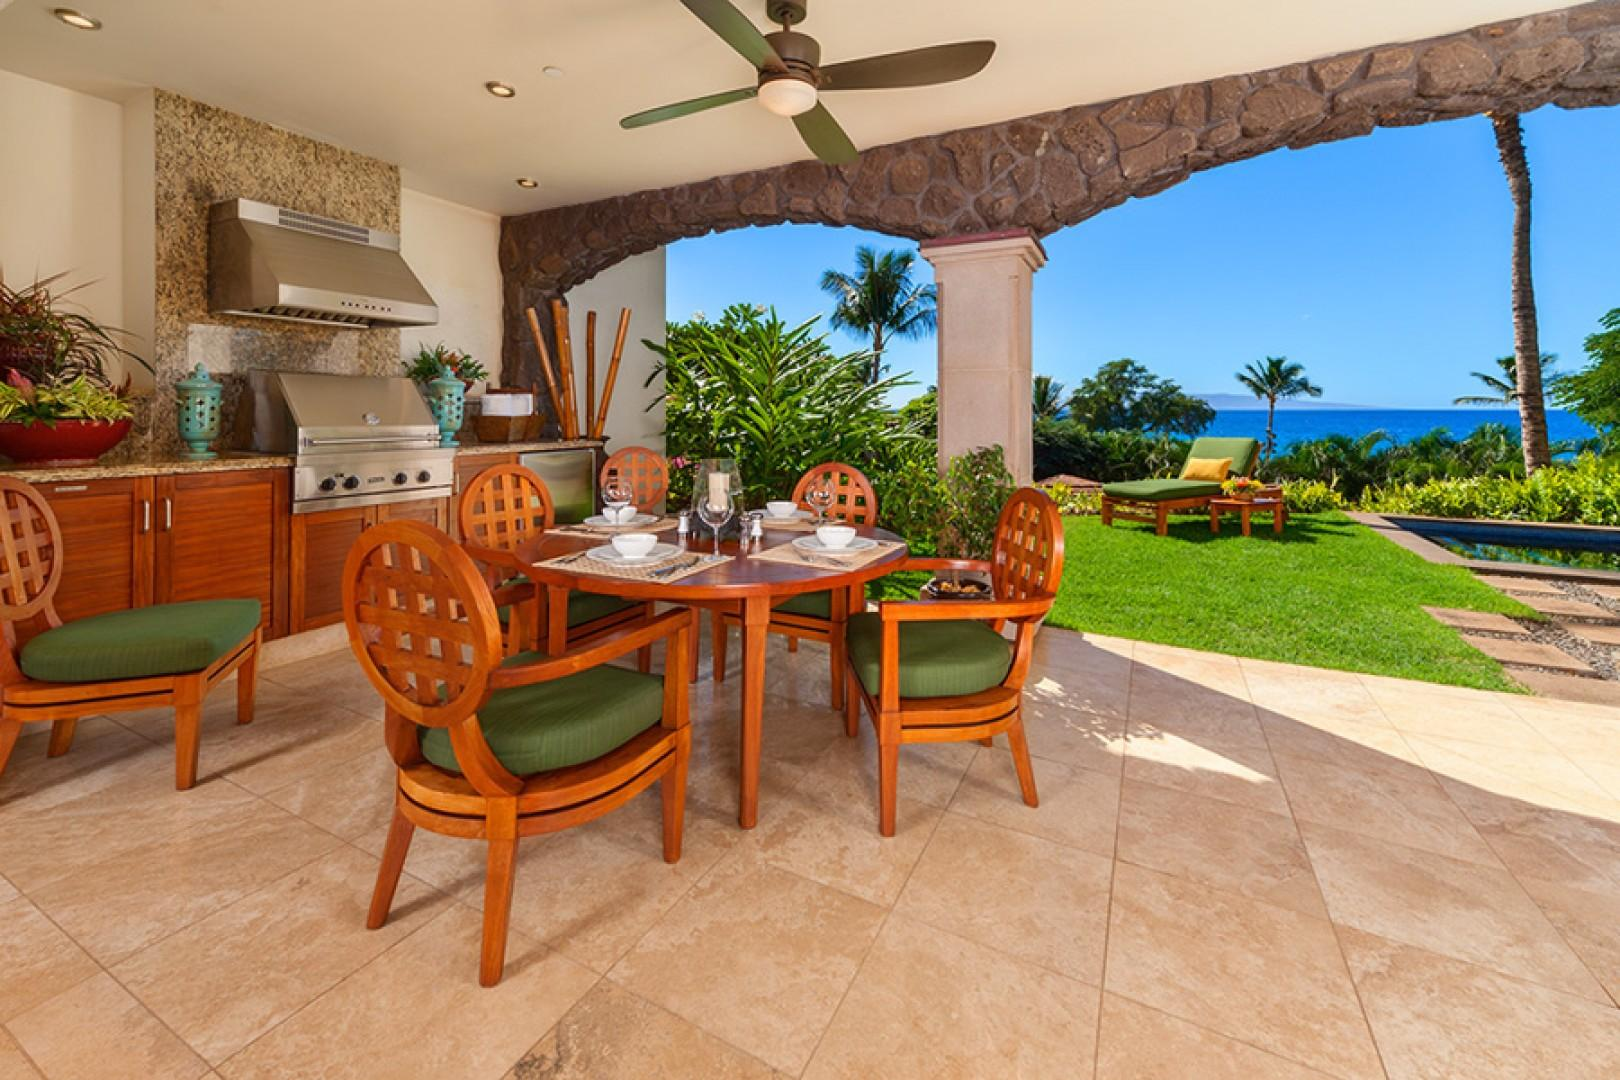 True Indoor/Outdoor Living with Ocean Views, Covered Veranda, Plunge Pool, Lawn and Garden, Viking Gas Grill, Bar Fridge, Patio Dining - Your Own Private Paradise at Coco Palms Pool Villa D101